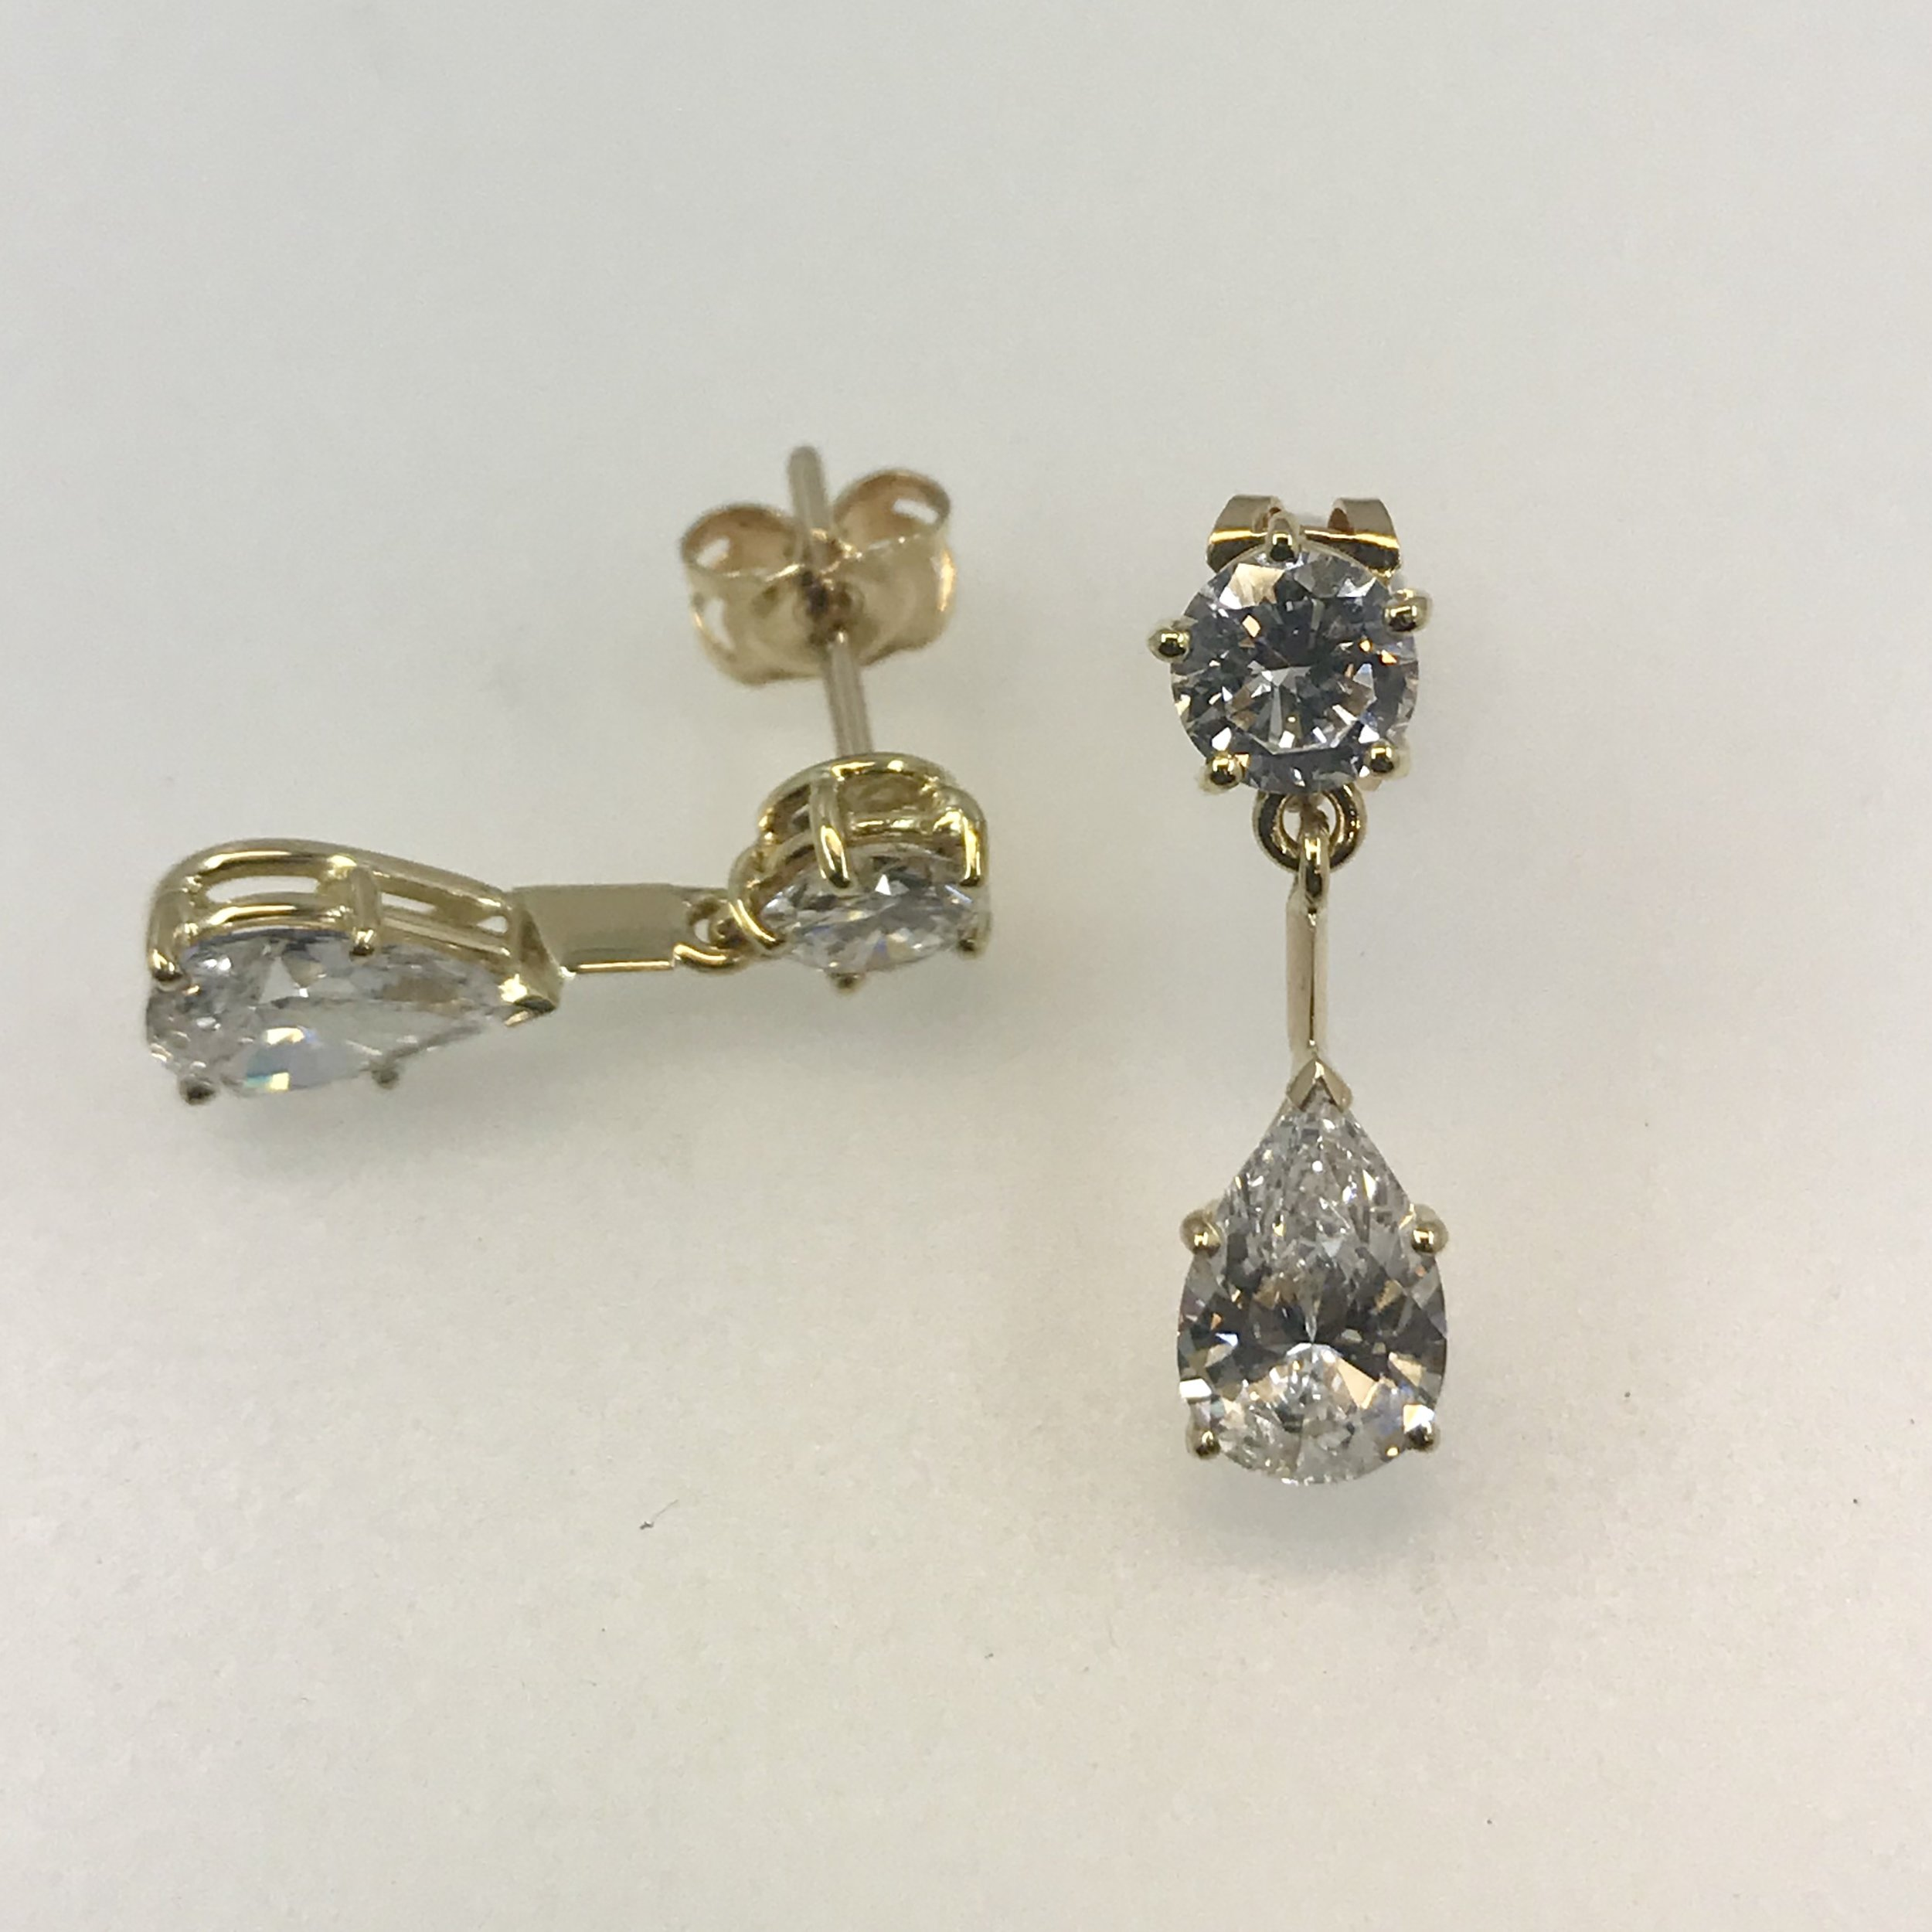 Yellow gold diamond stud and drop earrings - All Valuations include a comprehensive appraisal of each item.